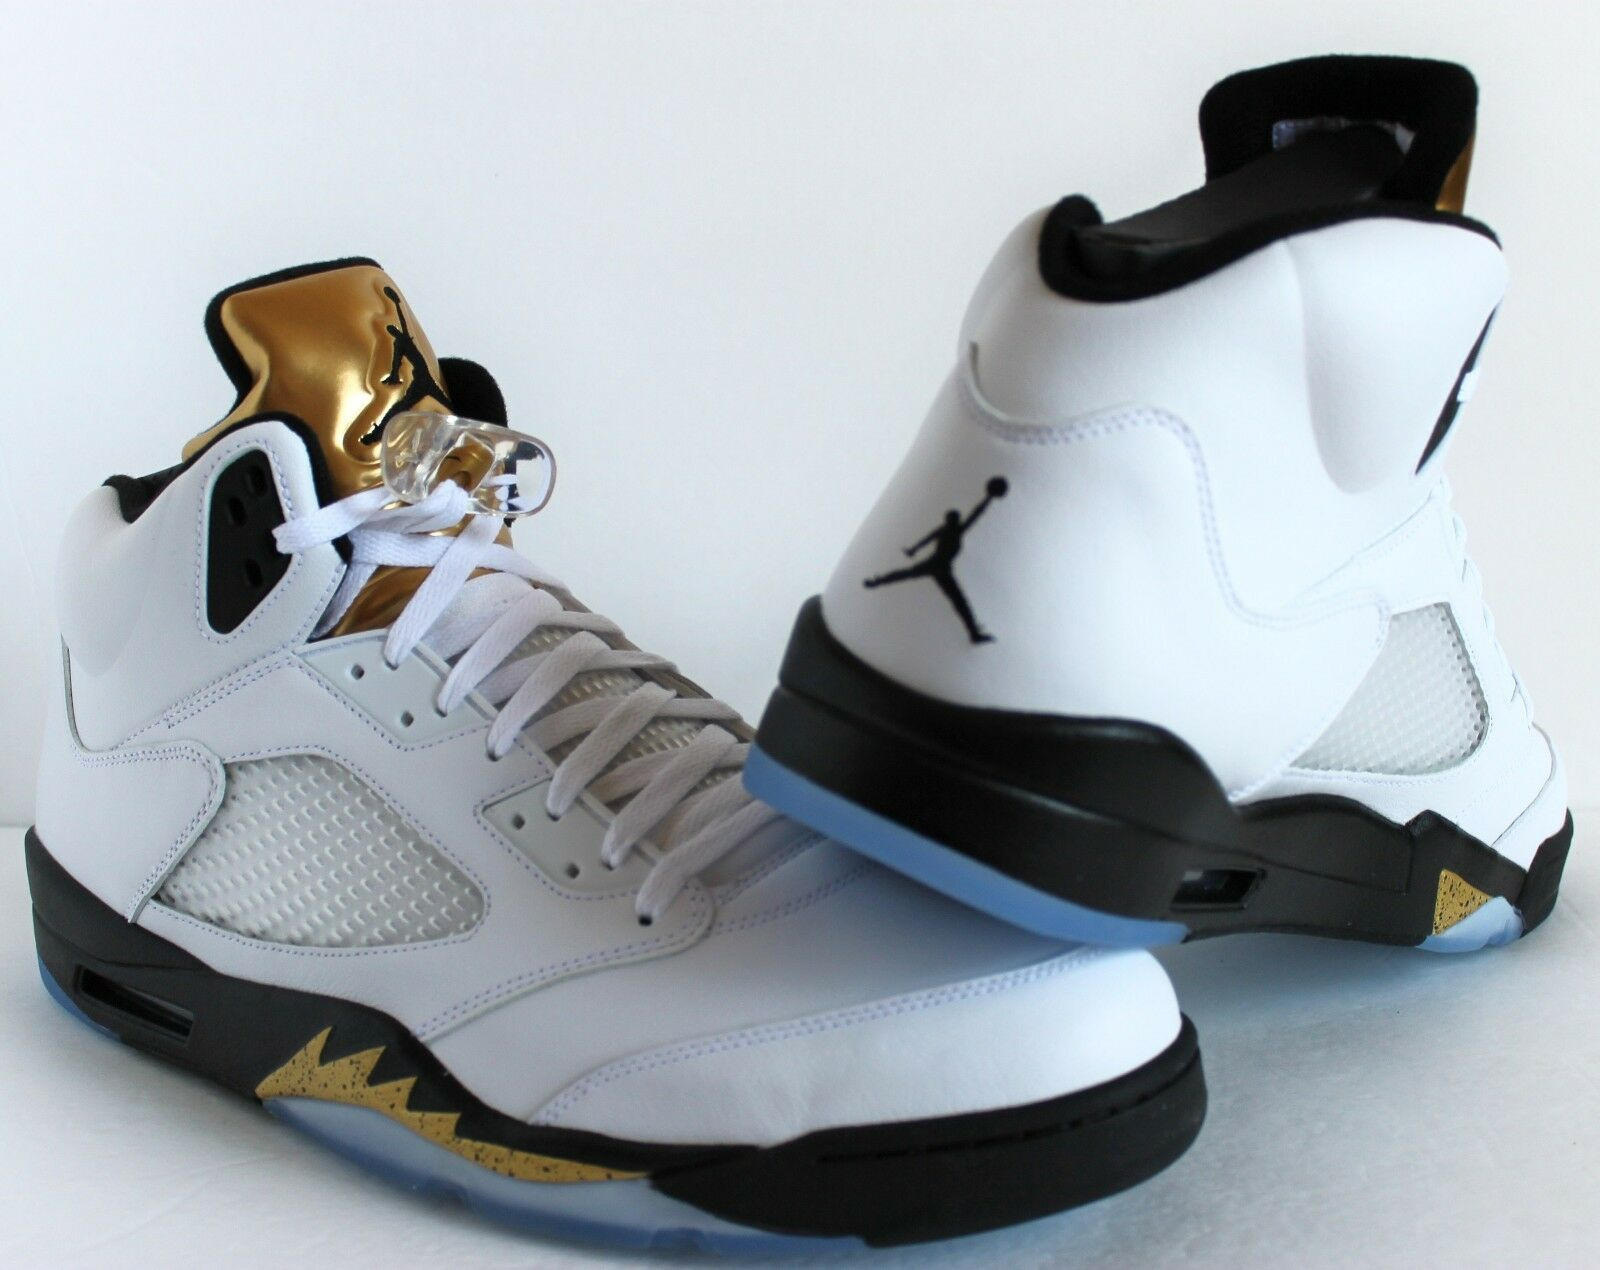 NIKE NIKE NIKE AIR JORDAN 5 RETRO WHITE/BLACK-METALLIC GOLD GOLD MEDAL SZ 15 [136027-133] af9e15